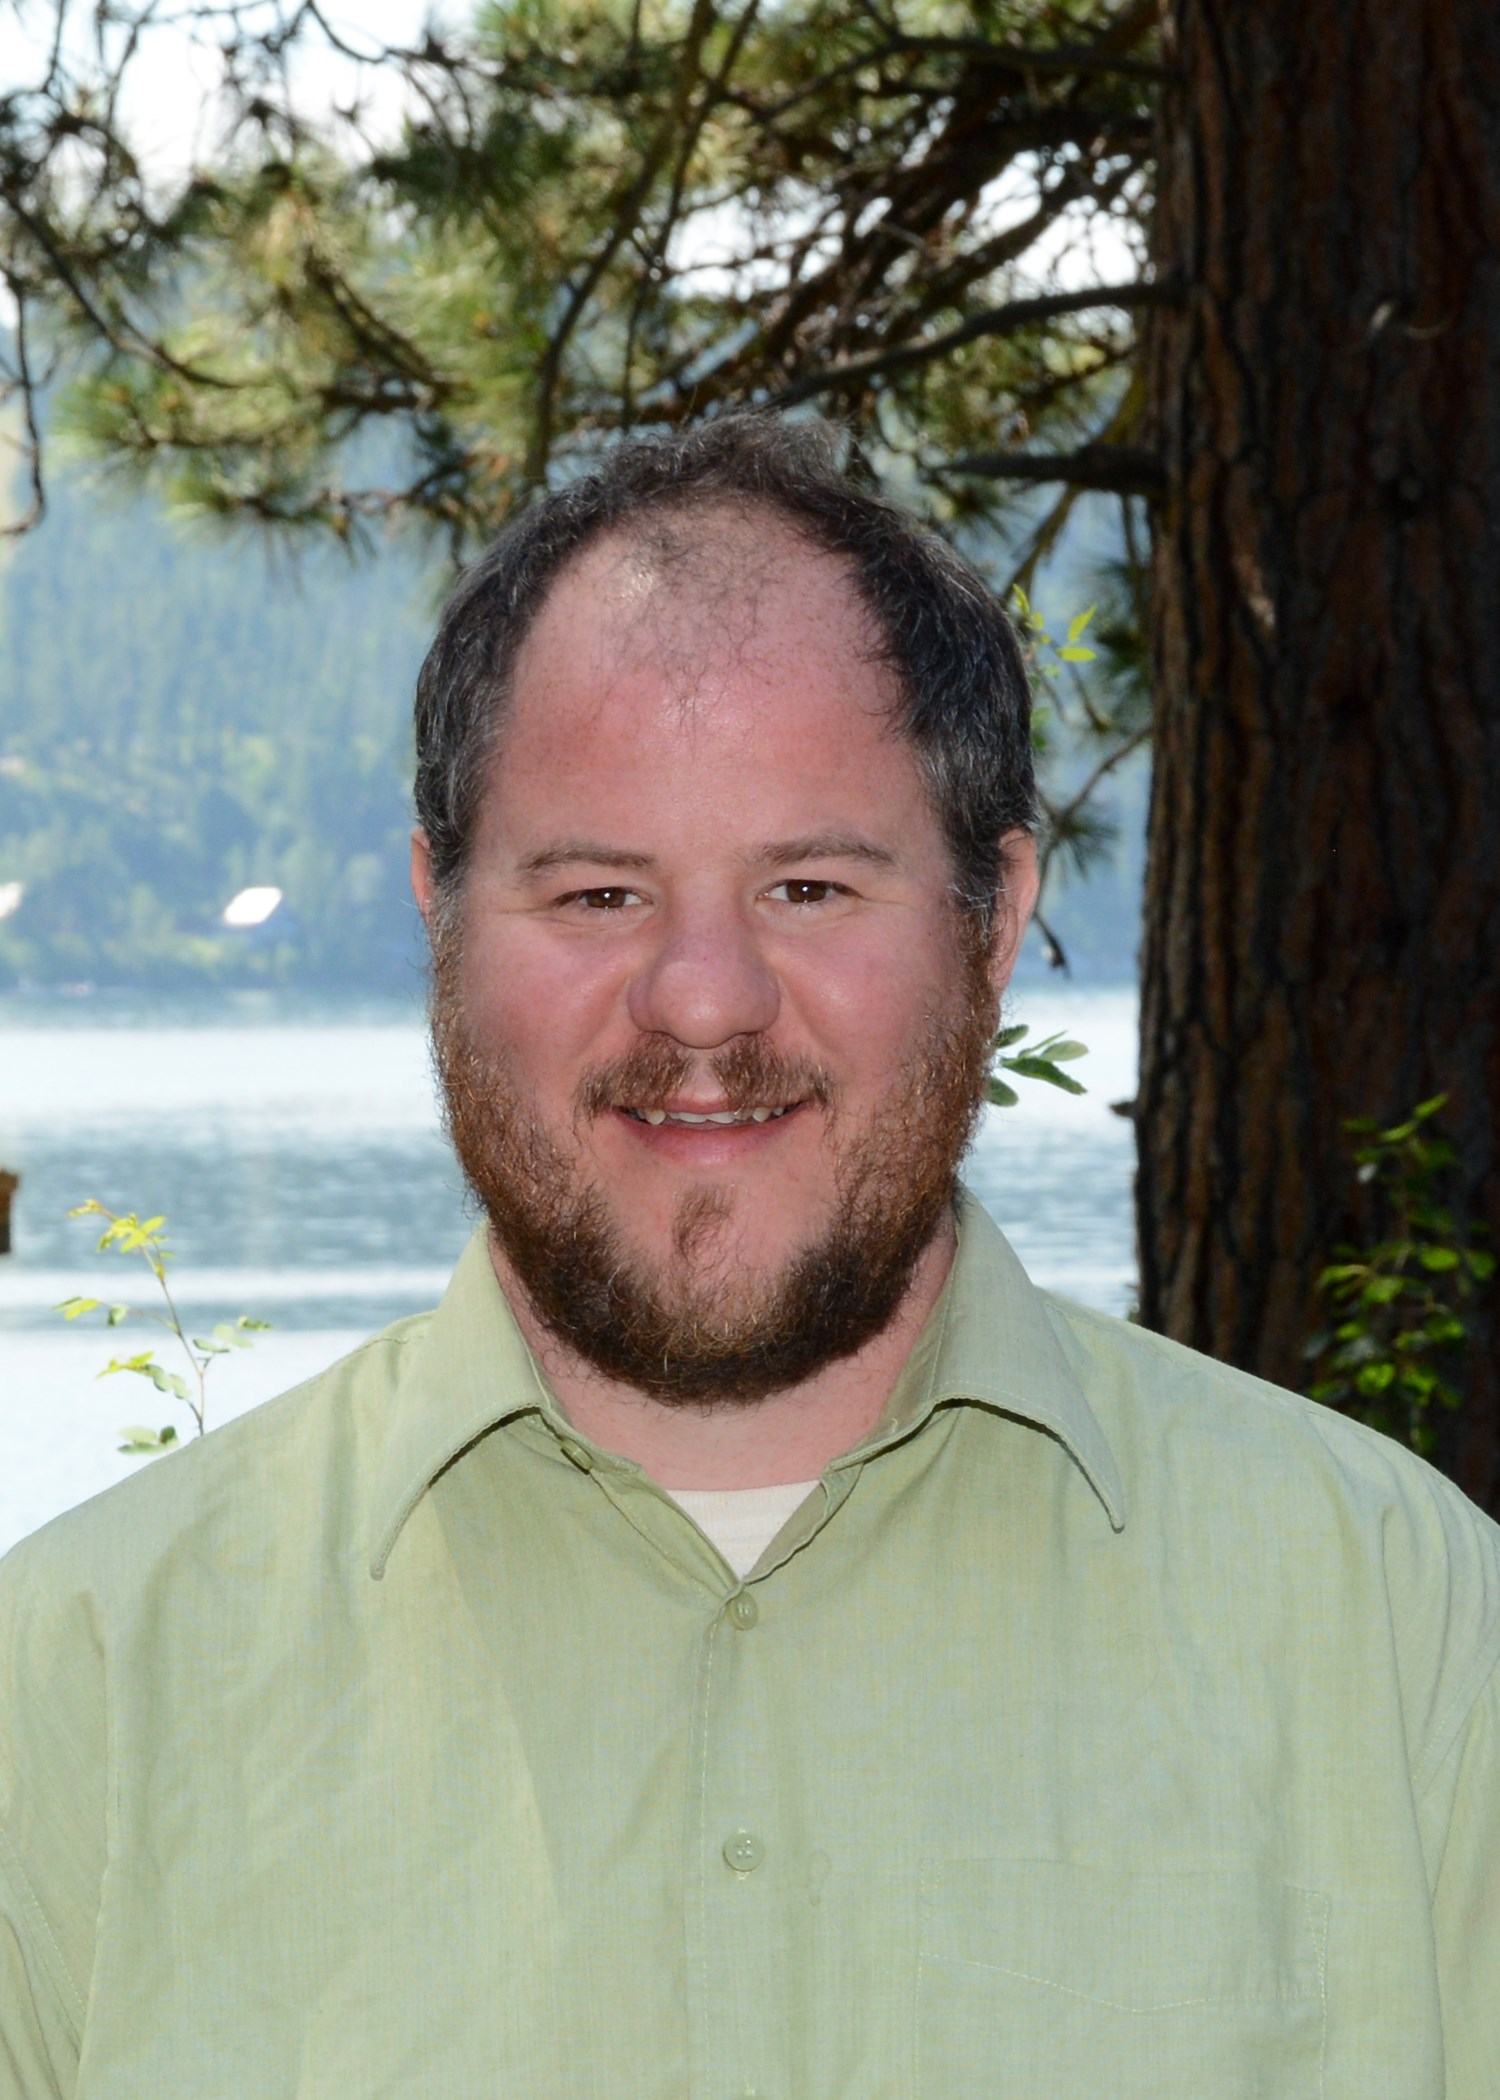 Shawn Devlin staff photo